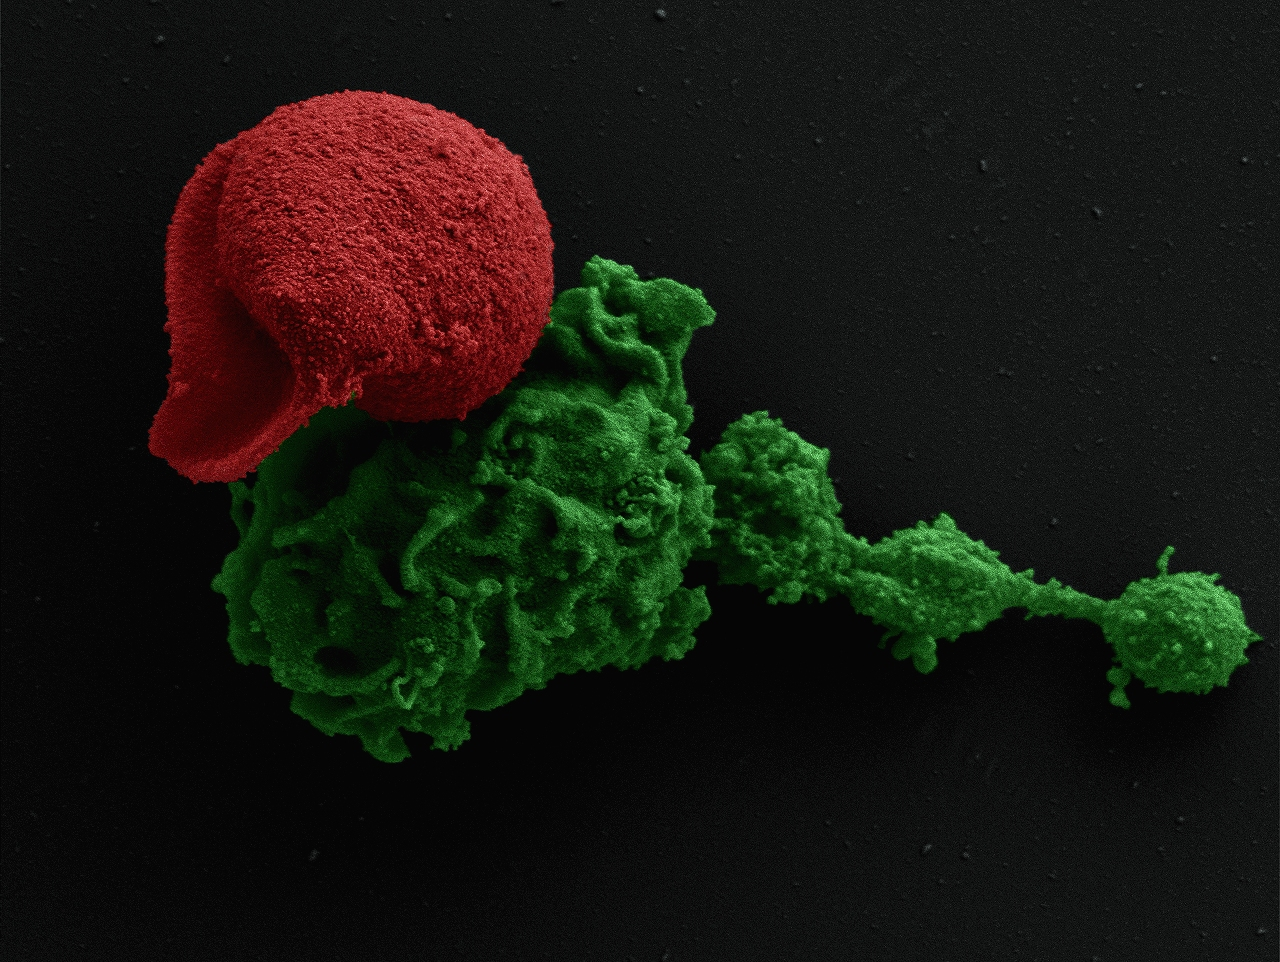 Macrophage (green) attachment to blood stage of the myxozoan Sphaerospora molnari (red)